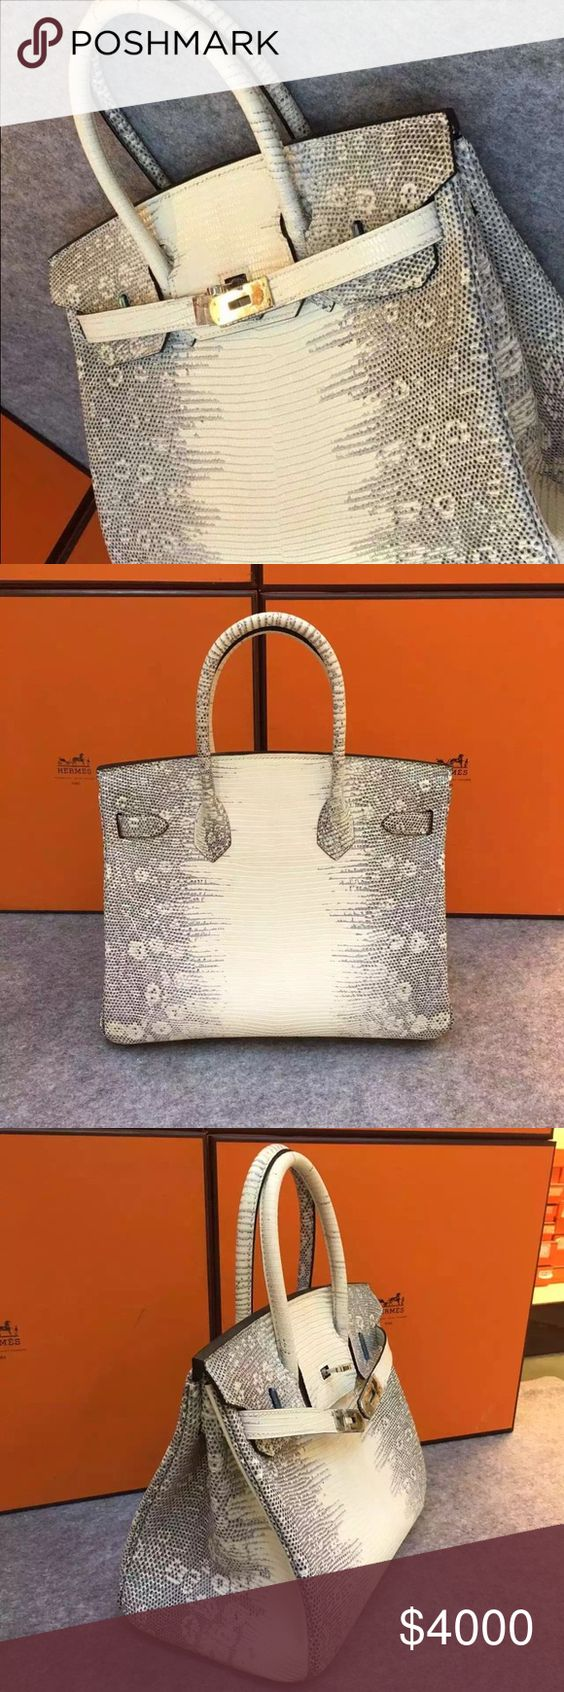 Hermes bag 100% LIZARD leather HERMES birkin 30 100% handmade guarantee ( please see the thread).  Silver hardware  Comes with box and dust bag, key... Sold as in the picture Hermes Bags